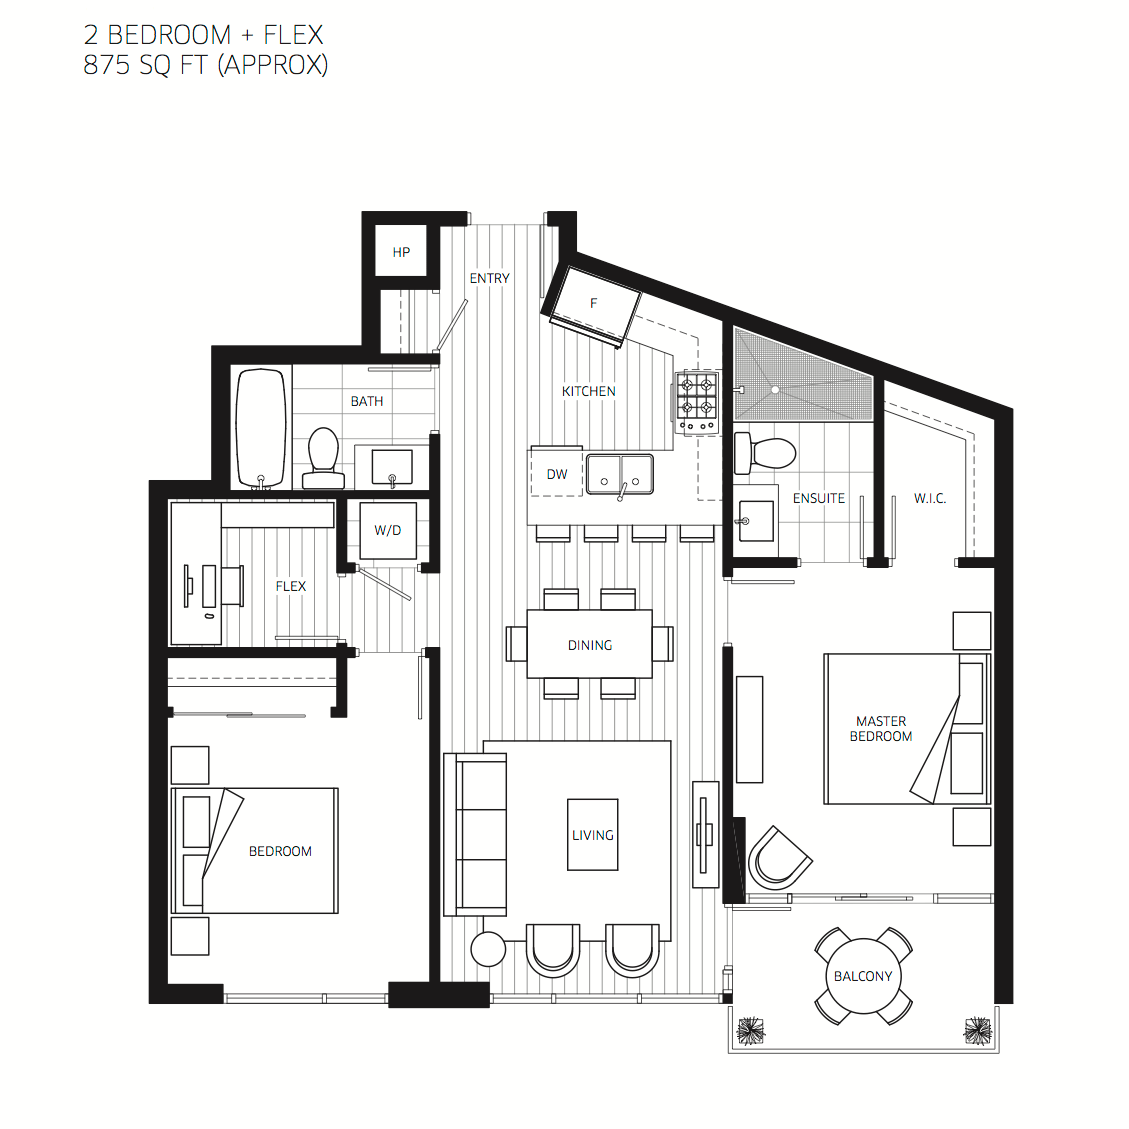 Interior 3d two bedroom house layout design plans 10 of for 2 bedroom layout design